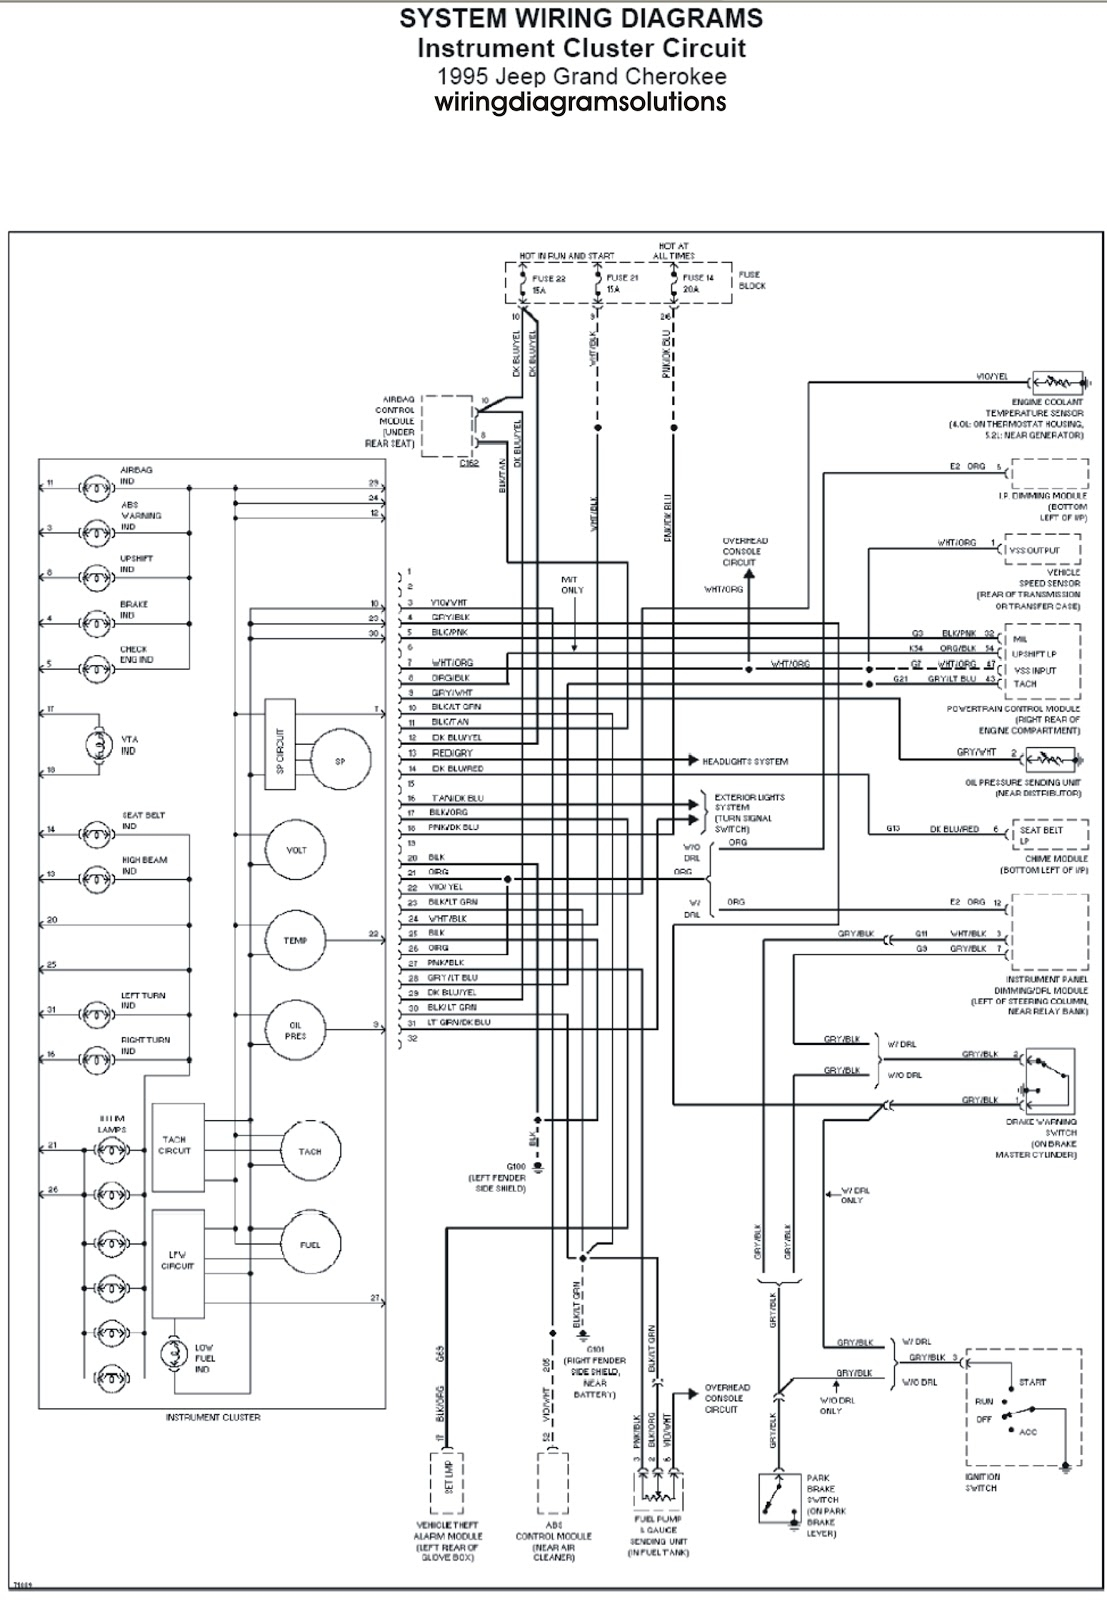 Yc Diagrama De Fusibles Jetta 98 On Chevy K5